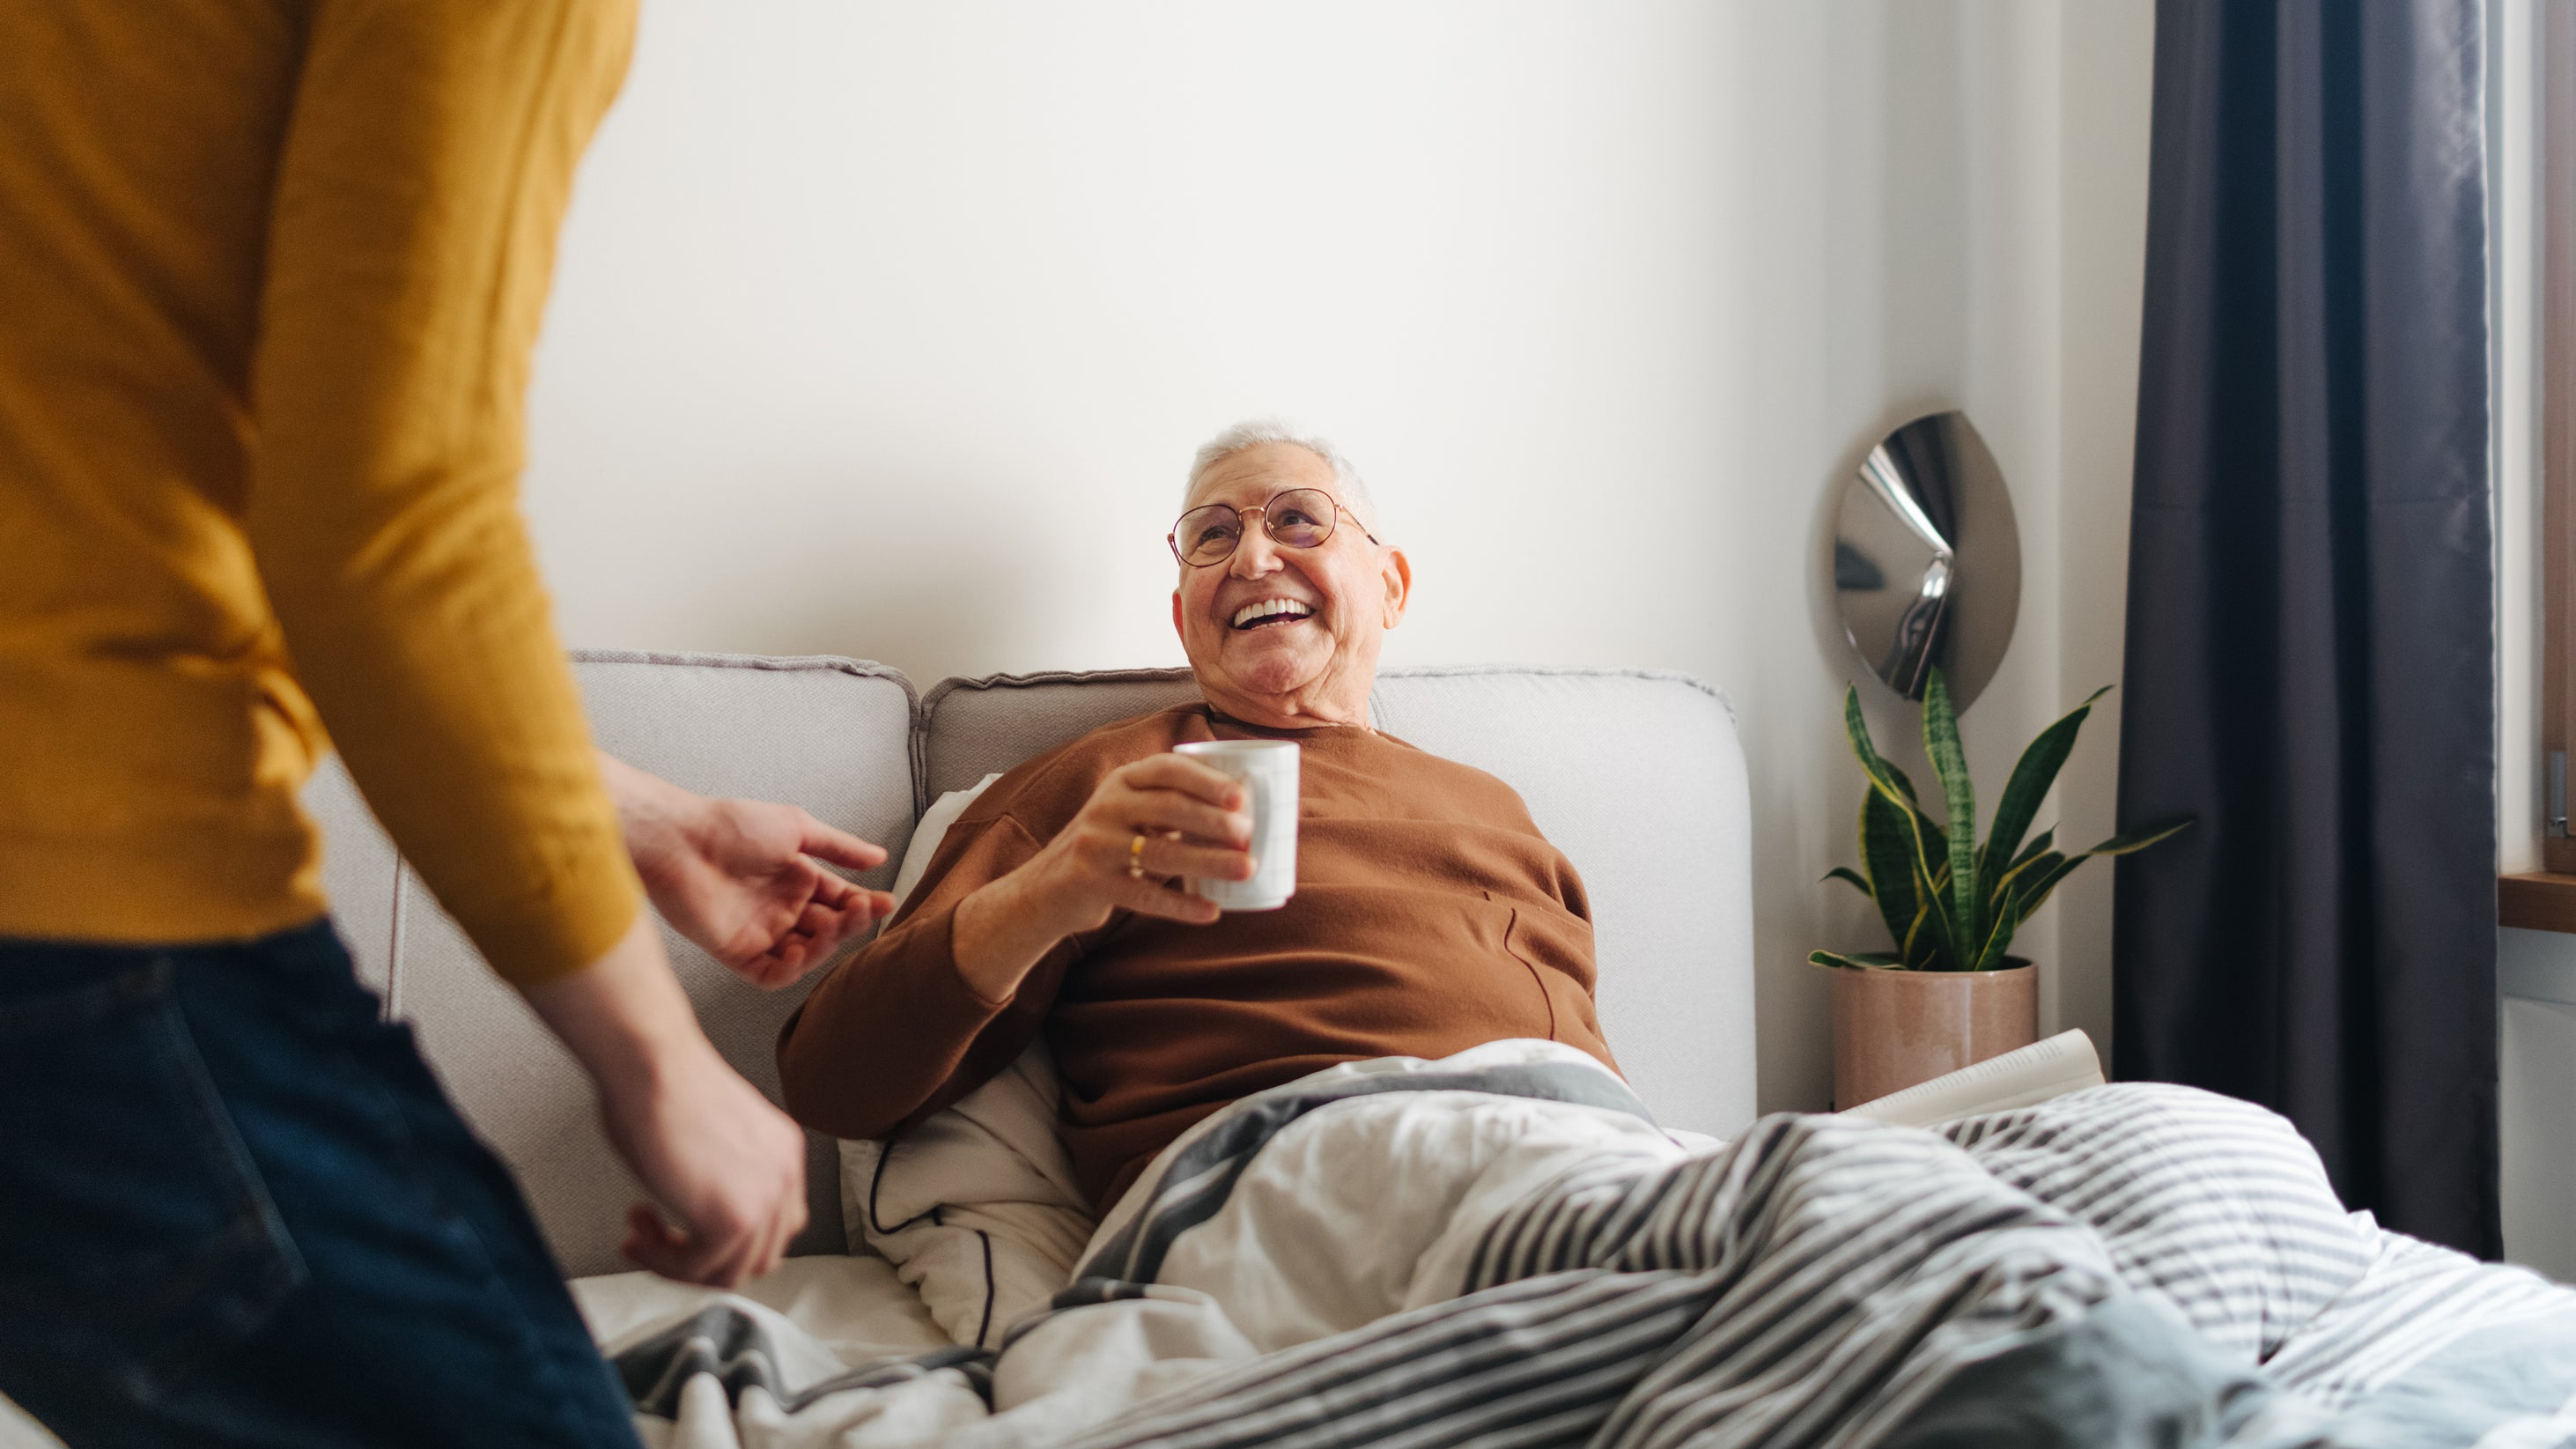 <p>Young man caring for grandfather</p>